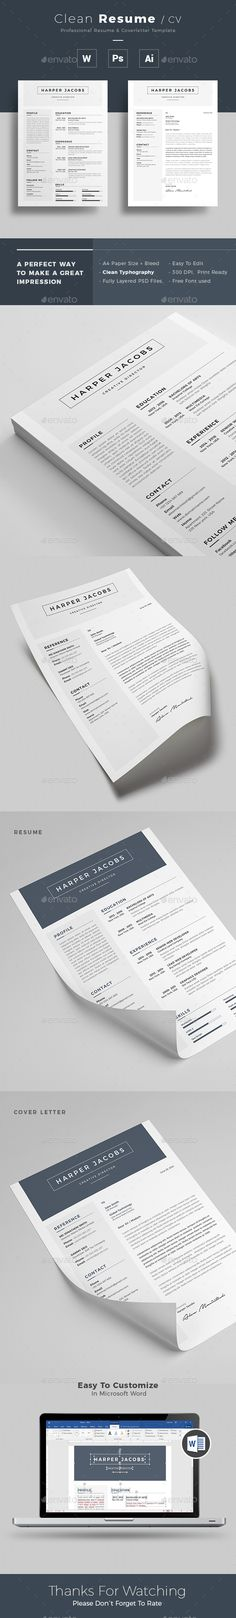 Cna Skills Resume Excel Simple And Clean Resume Cv Template  Reference Curriculum  Resume For A Highschool Student With No Experience Word with Resume Professionals Word Resume By Graphixodesign Professional Resumecv Template With Super Modern  And Professional Look Elegant Analytics Resume Pdf